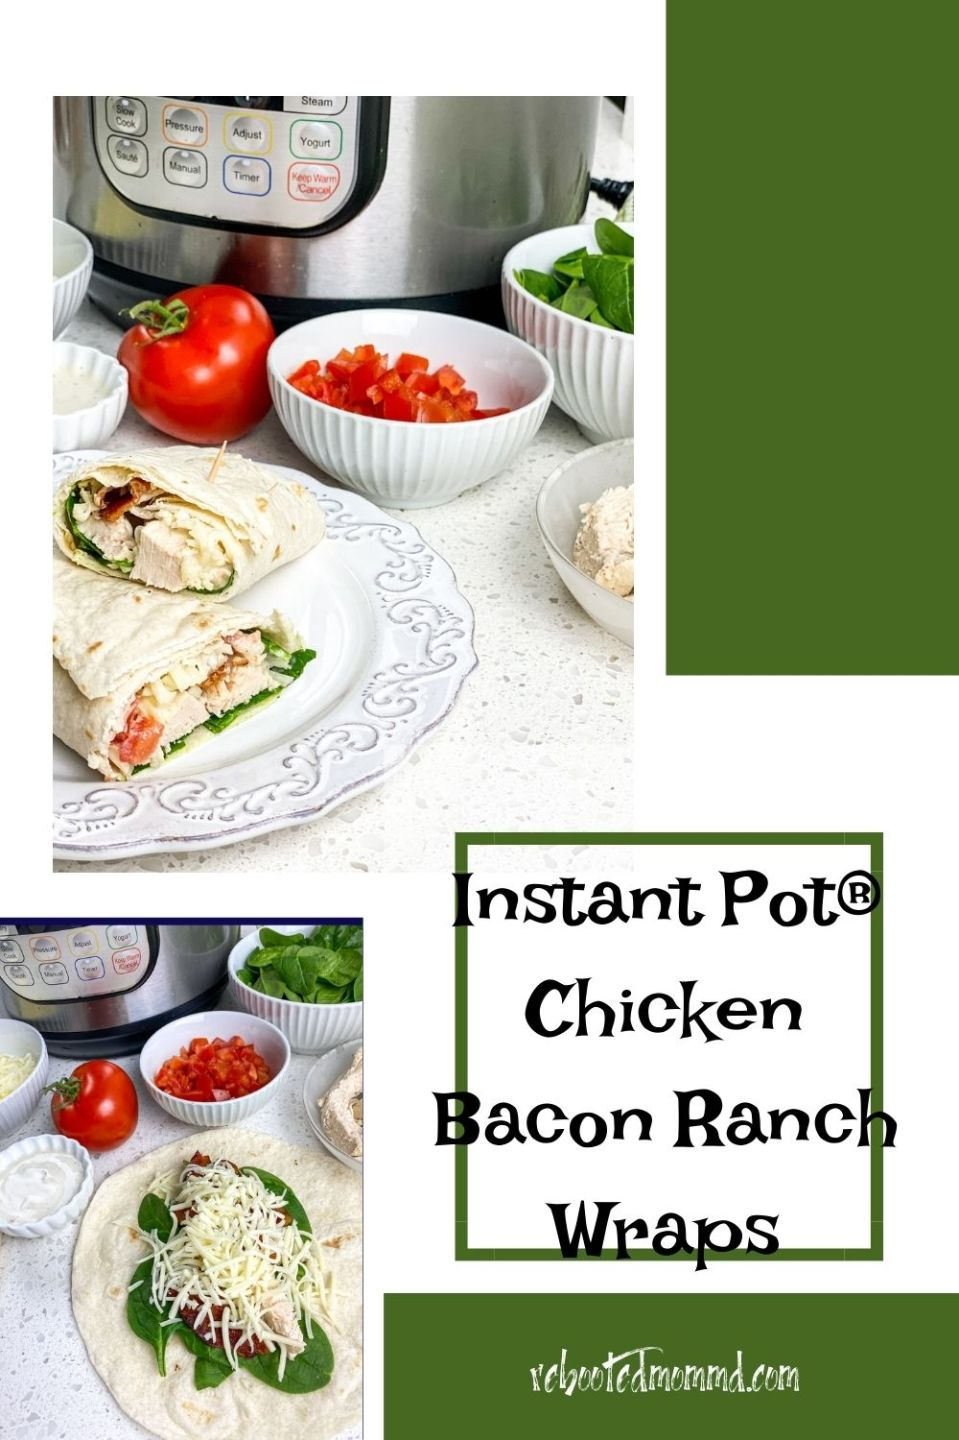 Instant Pot® Chicken Bacon Ranch Wraps